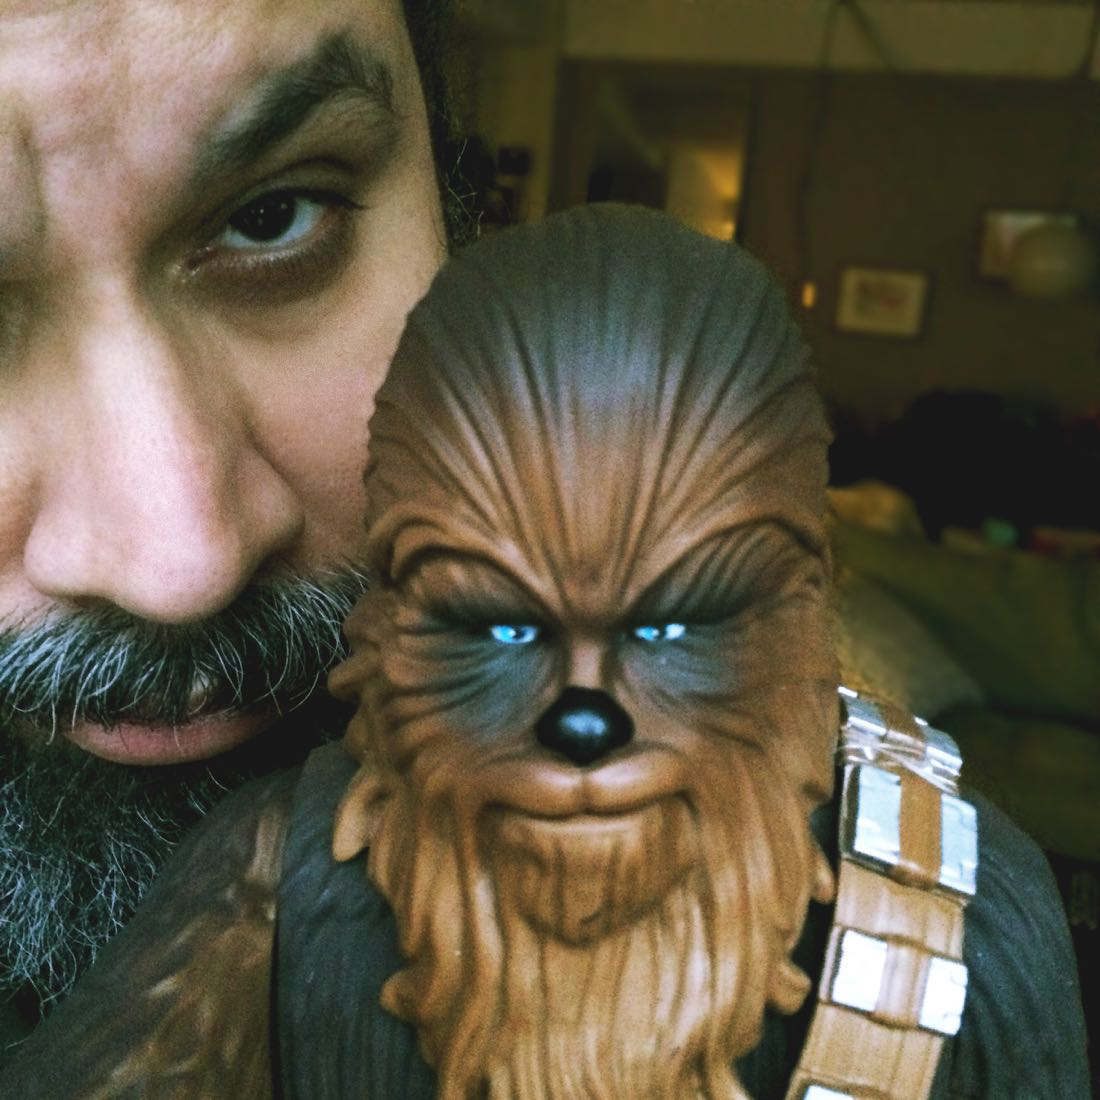 """Chewbacca, nicknamed """"Chewie"""", is a fictional character in the Star Wars franchise. He is a Wookiee"""